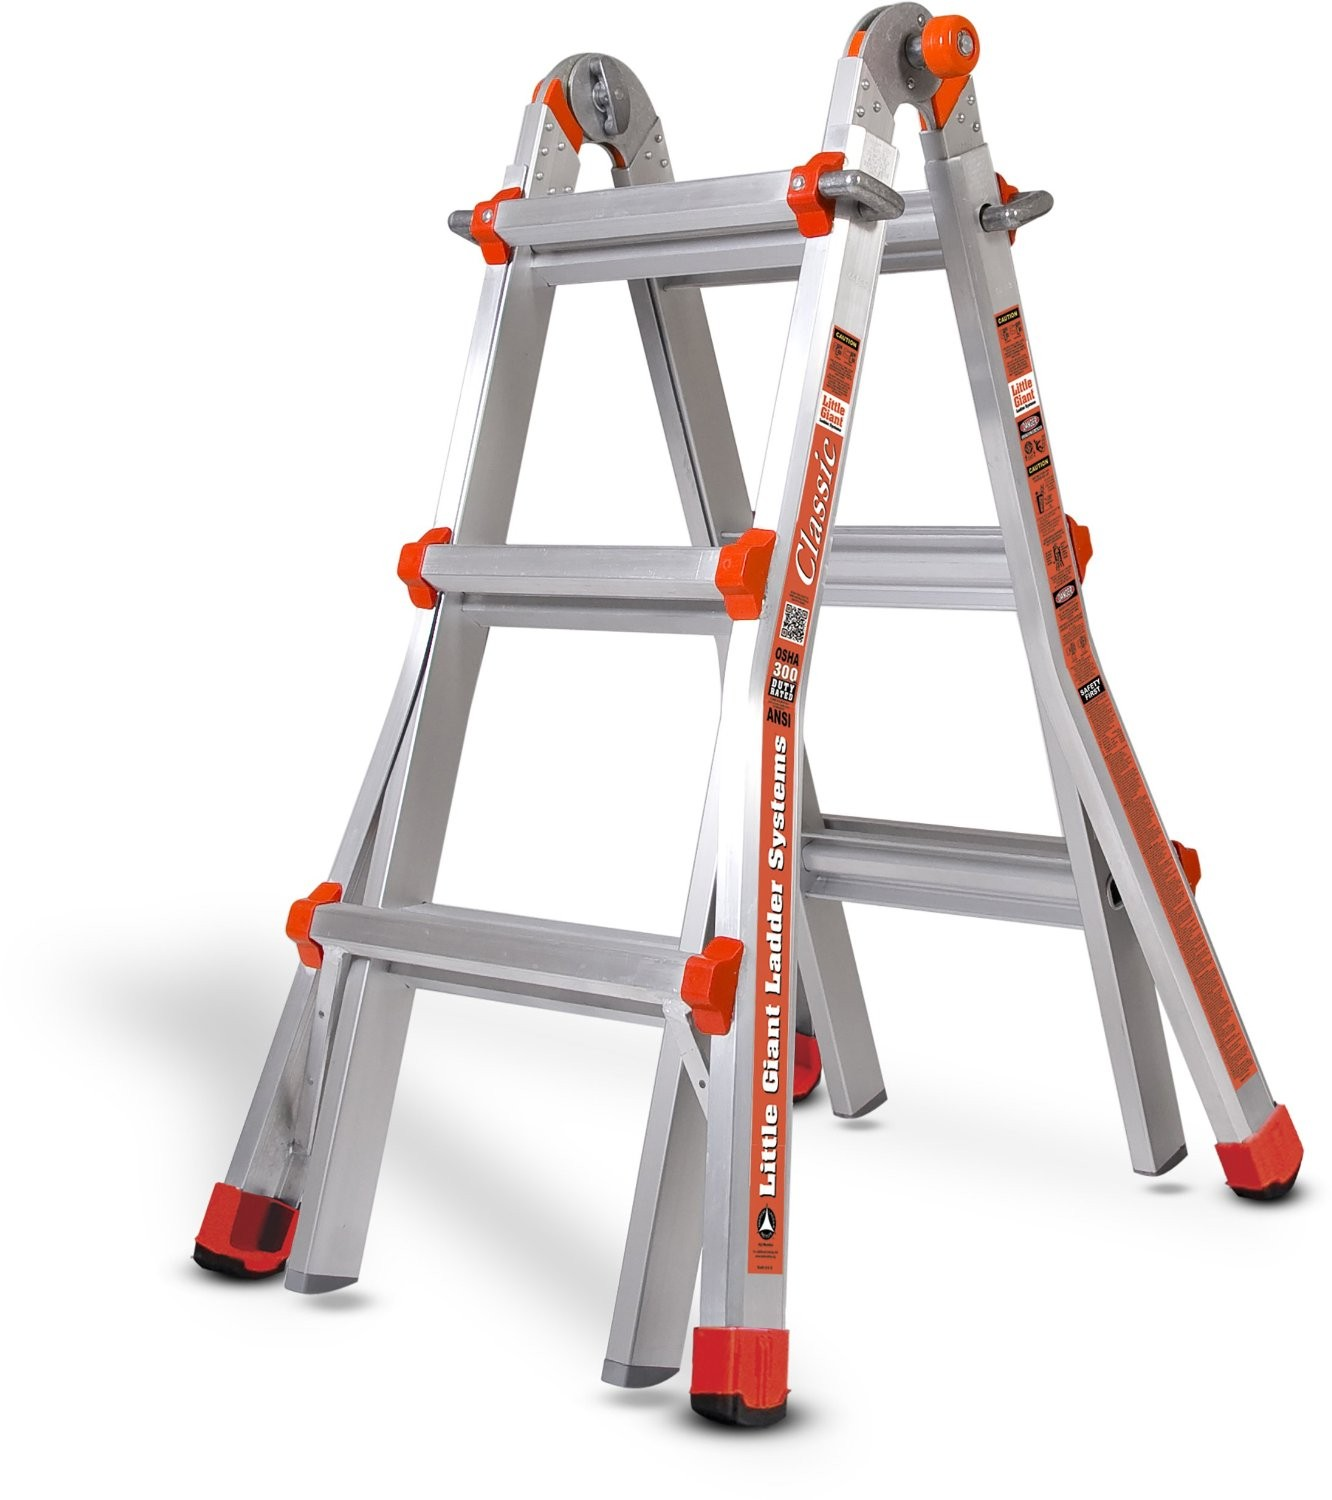 Type1A Classic Little Giant Ladder M-13 #10101